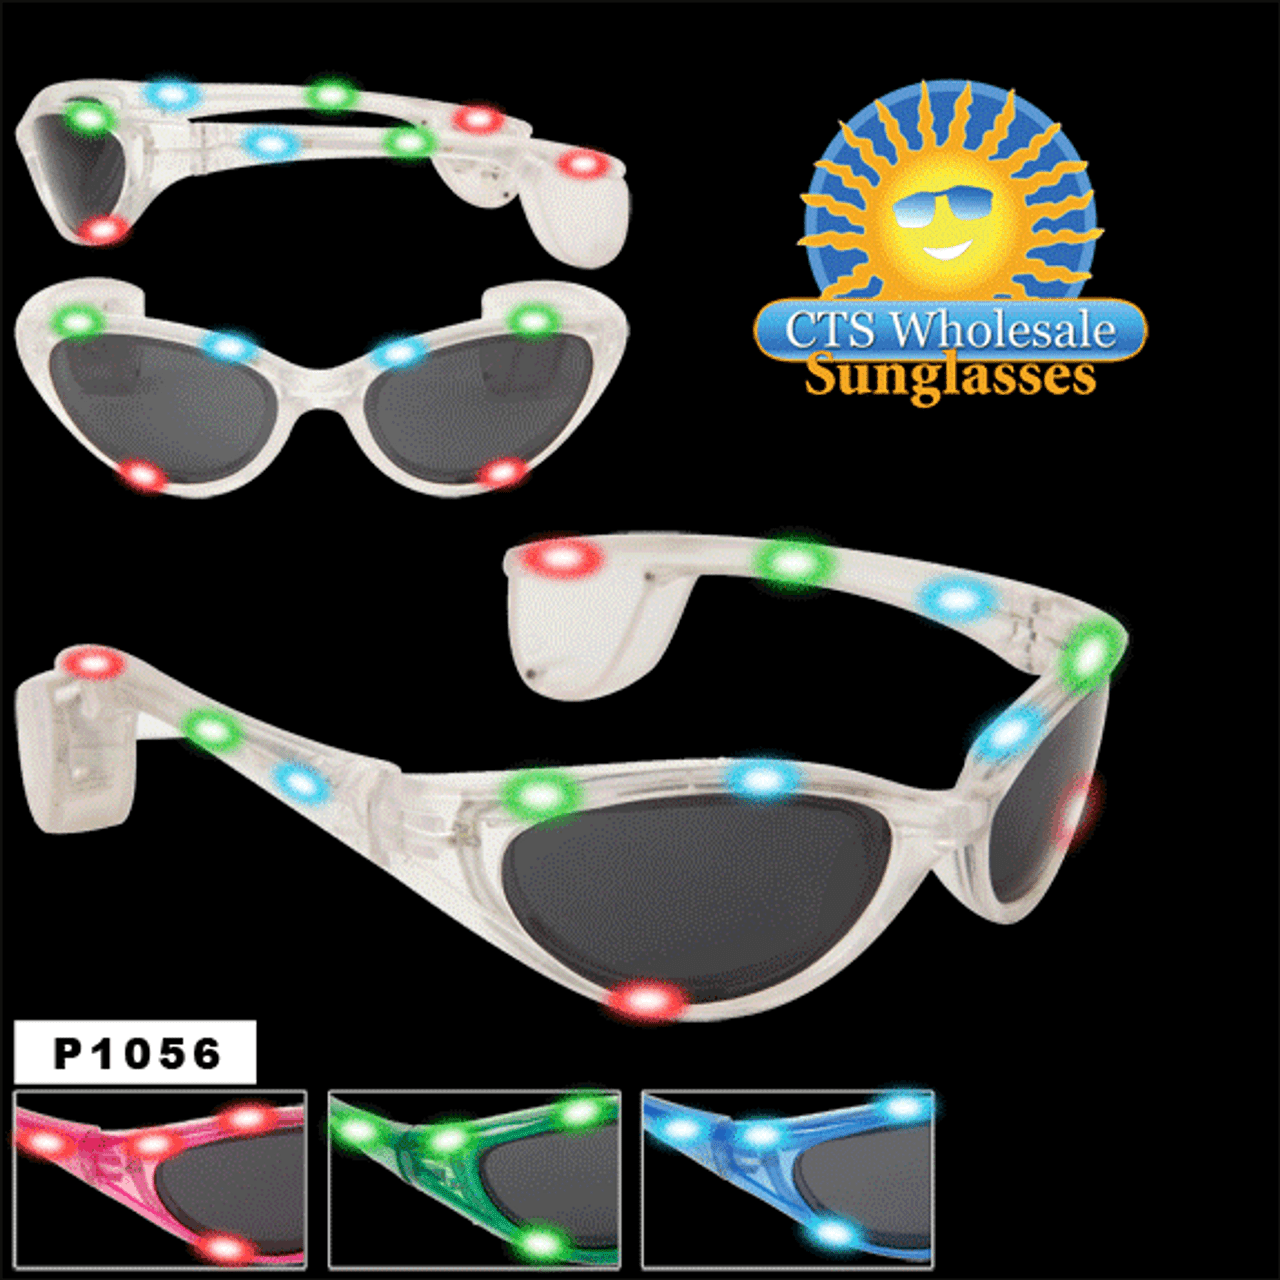 Flashing Sunglasses ~ Sporty Style ~ P1056 (Assorted Colors) (12 pcs.)